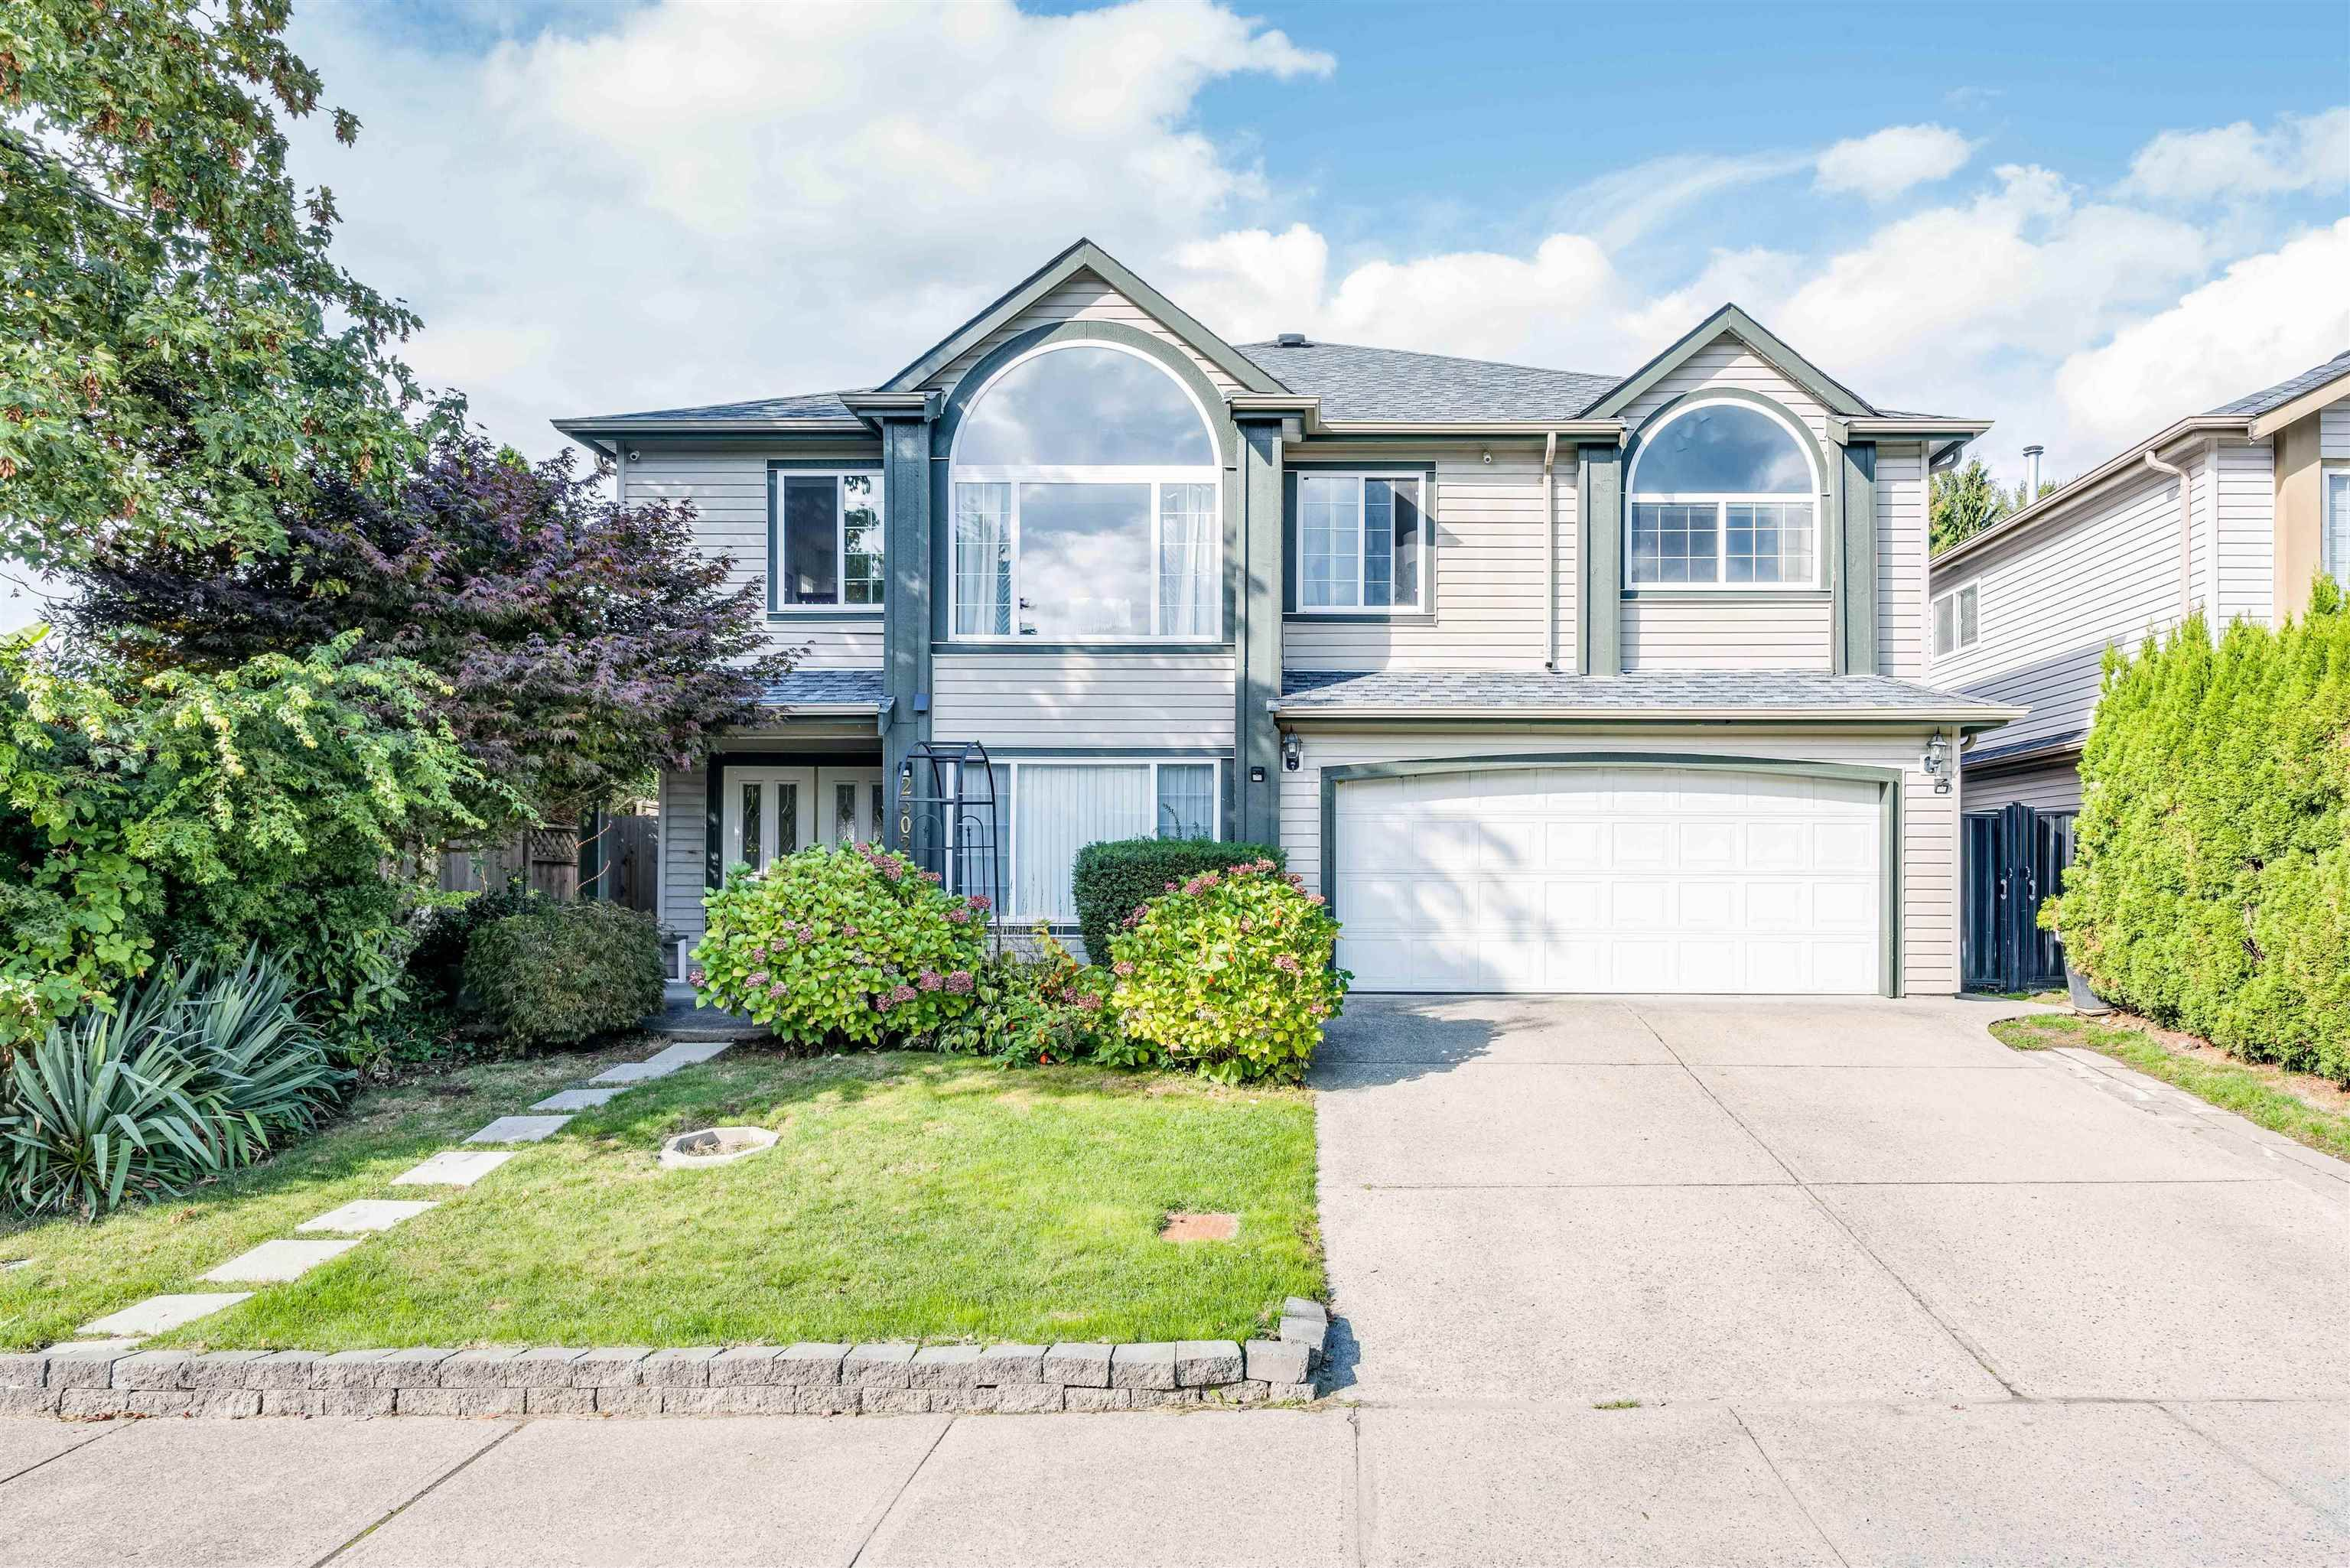 Main Photo: 23027 CLIFF Avenue in Maple Ridge: East Central House for sale : MLS®# R2619476